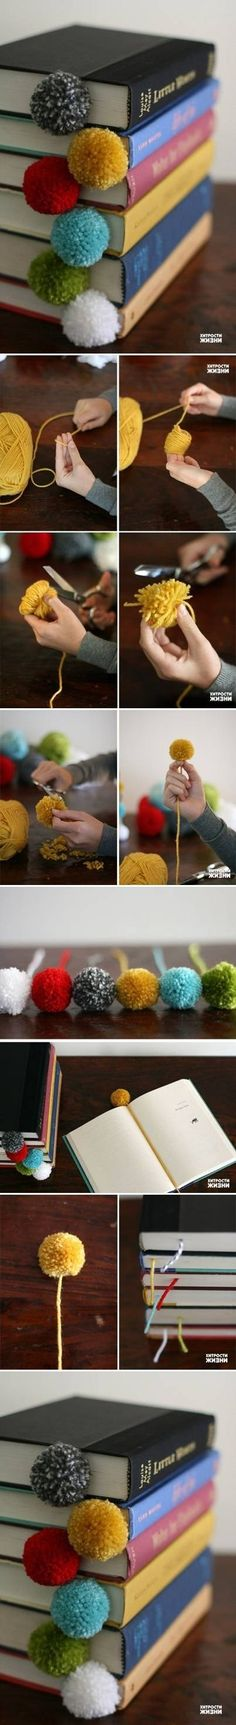 DIY Fancy Pom Poms Bookmark DIY Fancy Pom Poms Bookmark by diyforever. Im Not Much Of A Reader But These are Cute & A Good Idea .